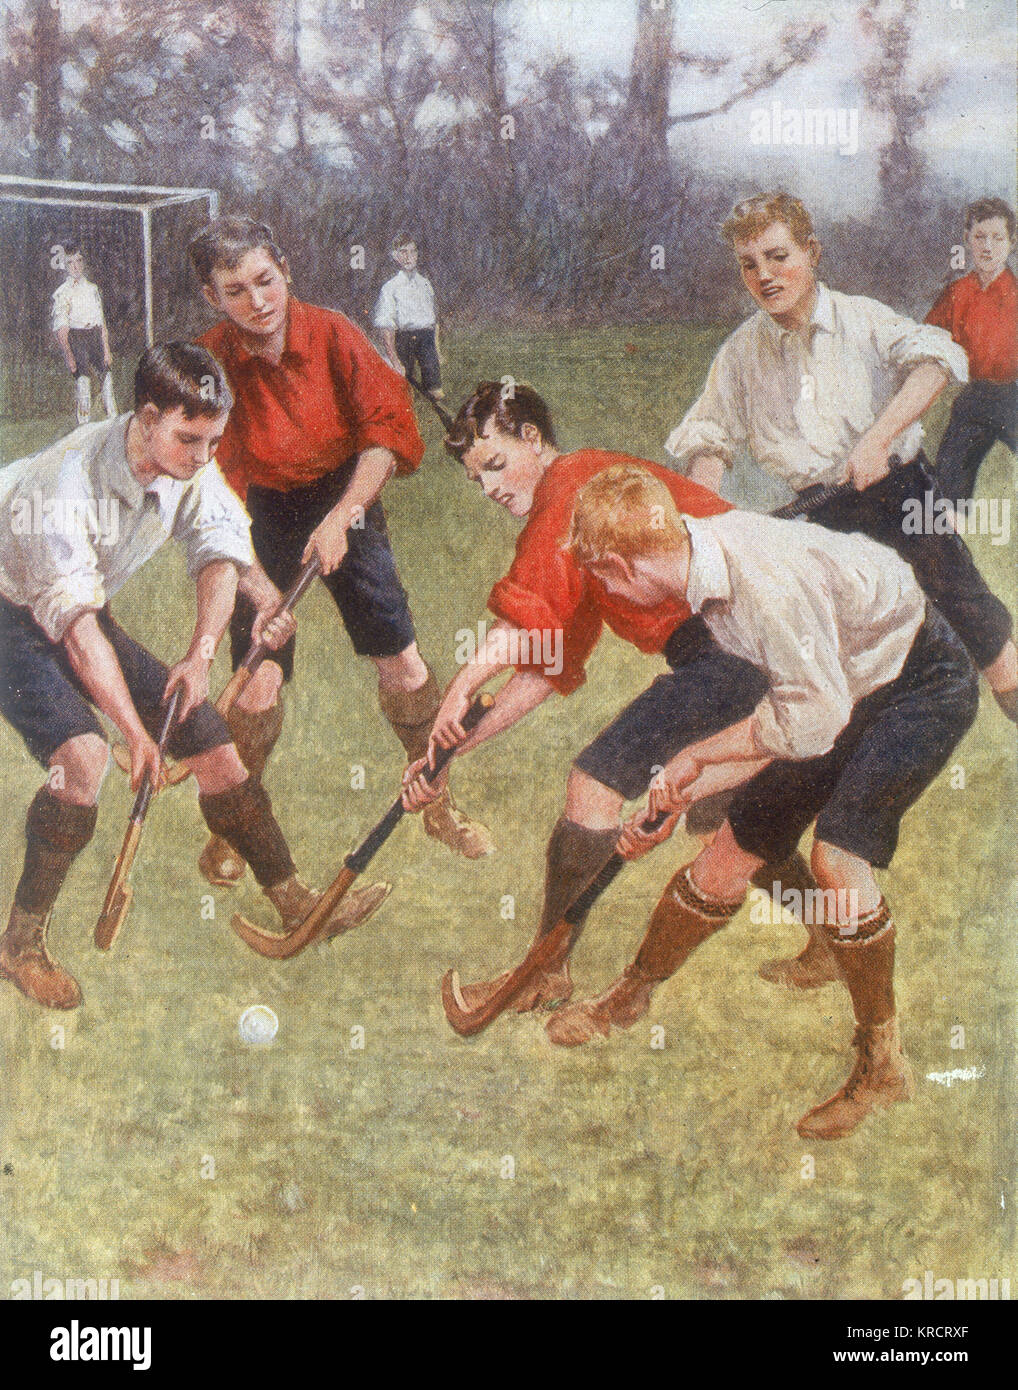 A boys' hockey game Date: 1908 - Stock Image